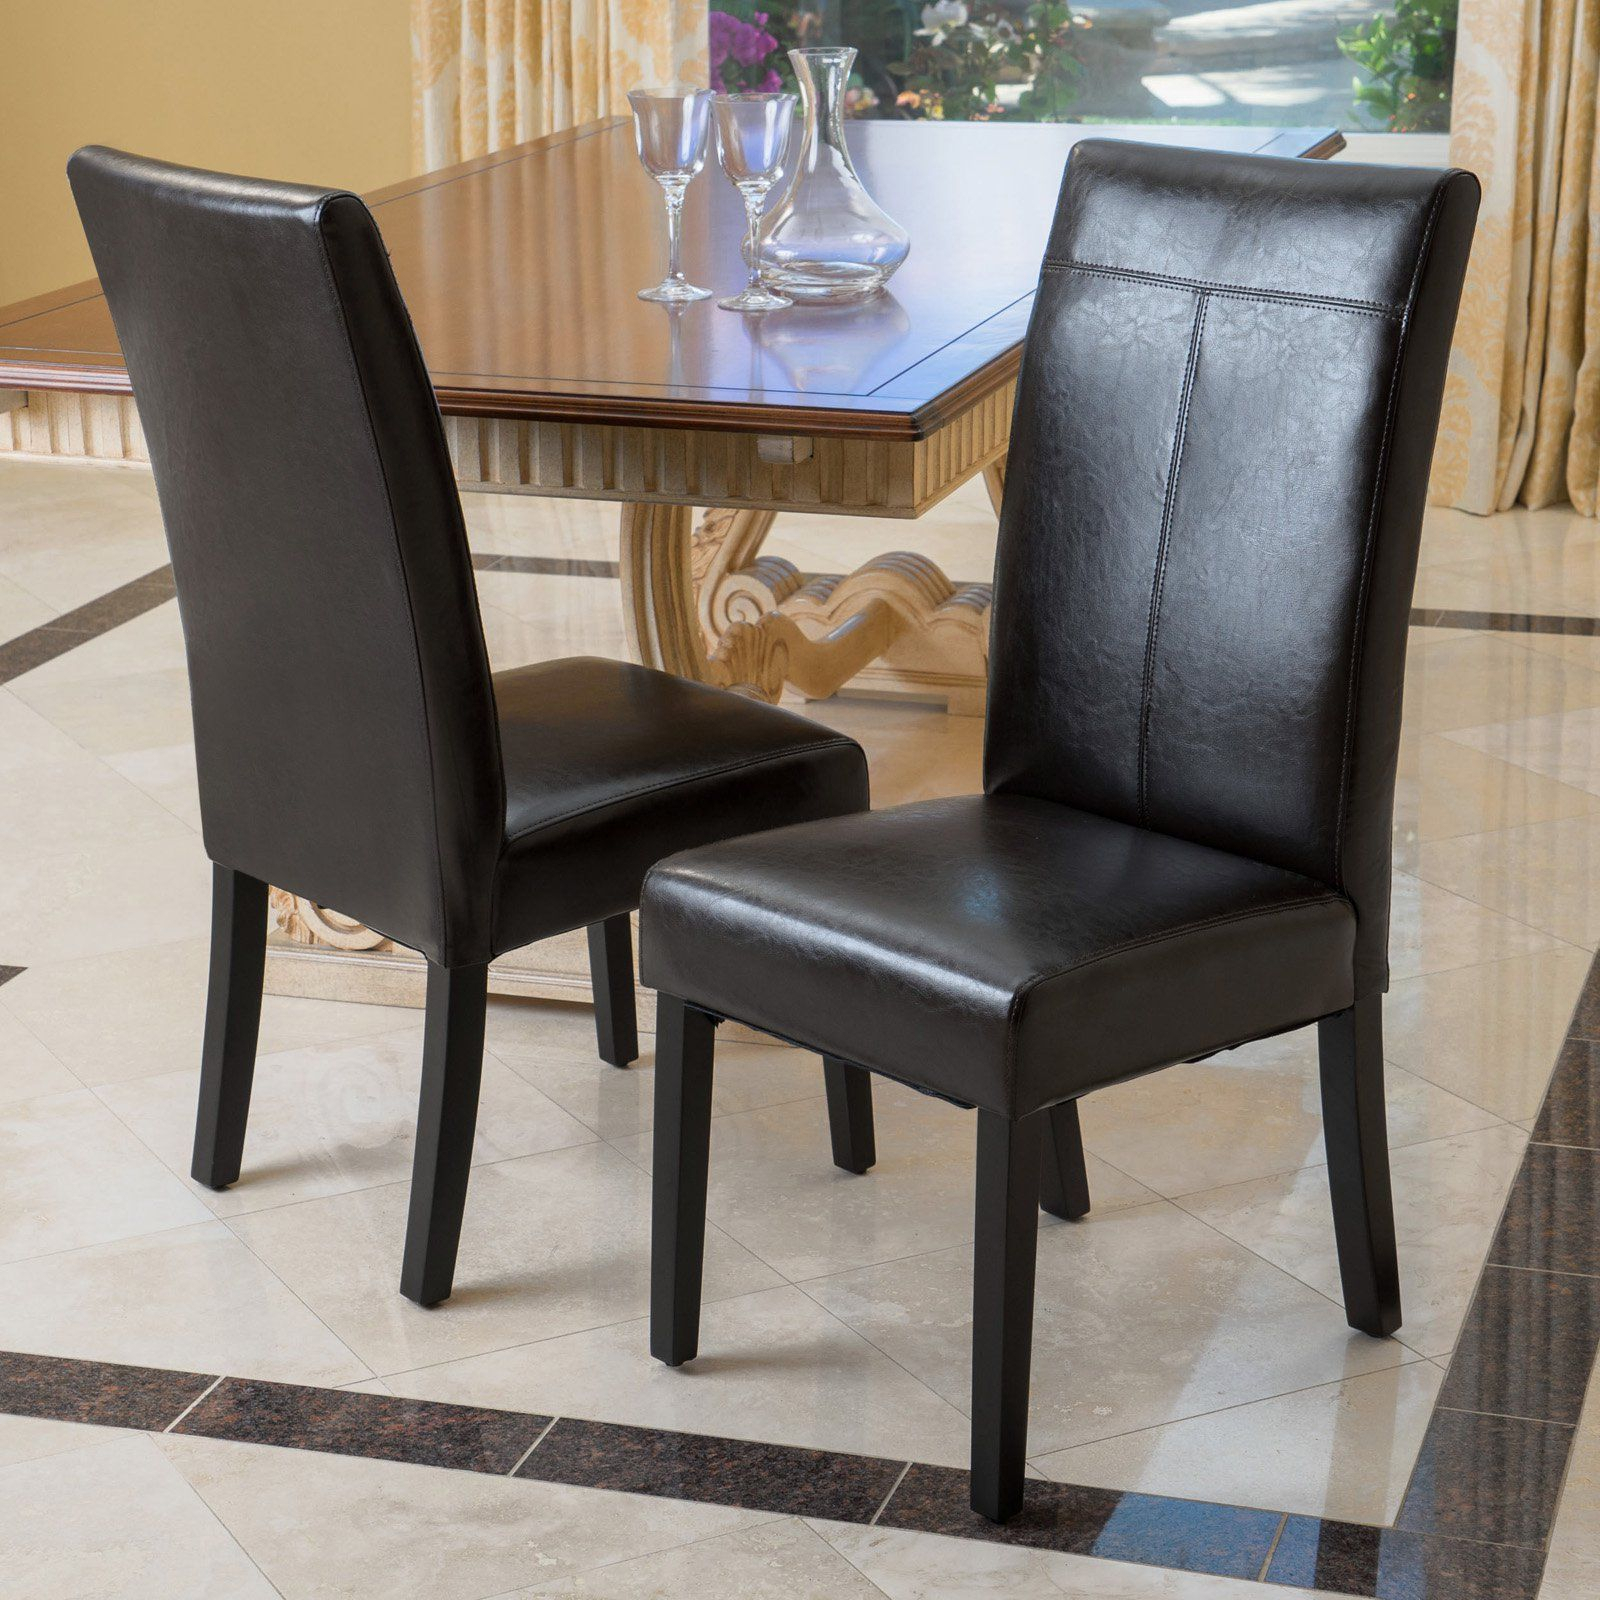 Best Selling Home Caleb Pu Leather Dining Chair – Set Of 2 – 217146 With Best And Newest Baillie 3 Piece Dining Sets (Image 3 of 20)